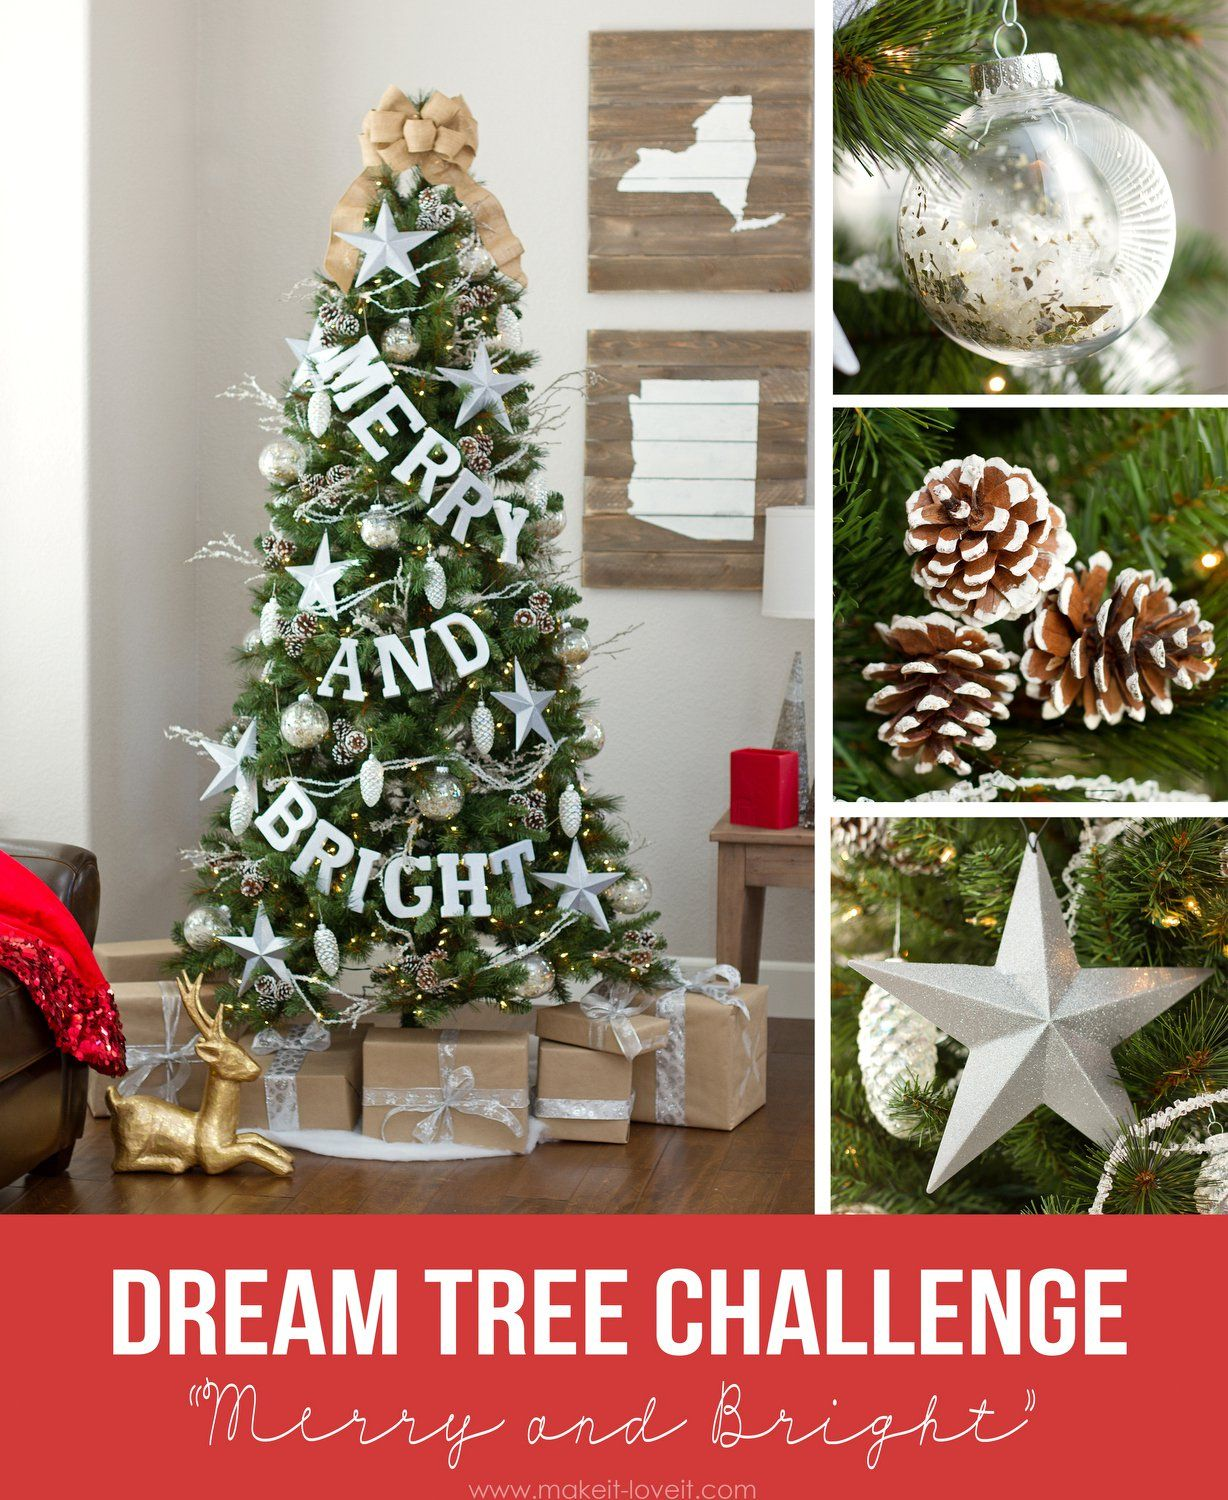 Merry and Bright Dream Tree Challenge 2014